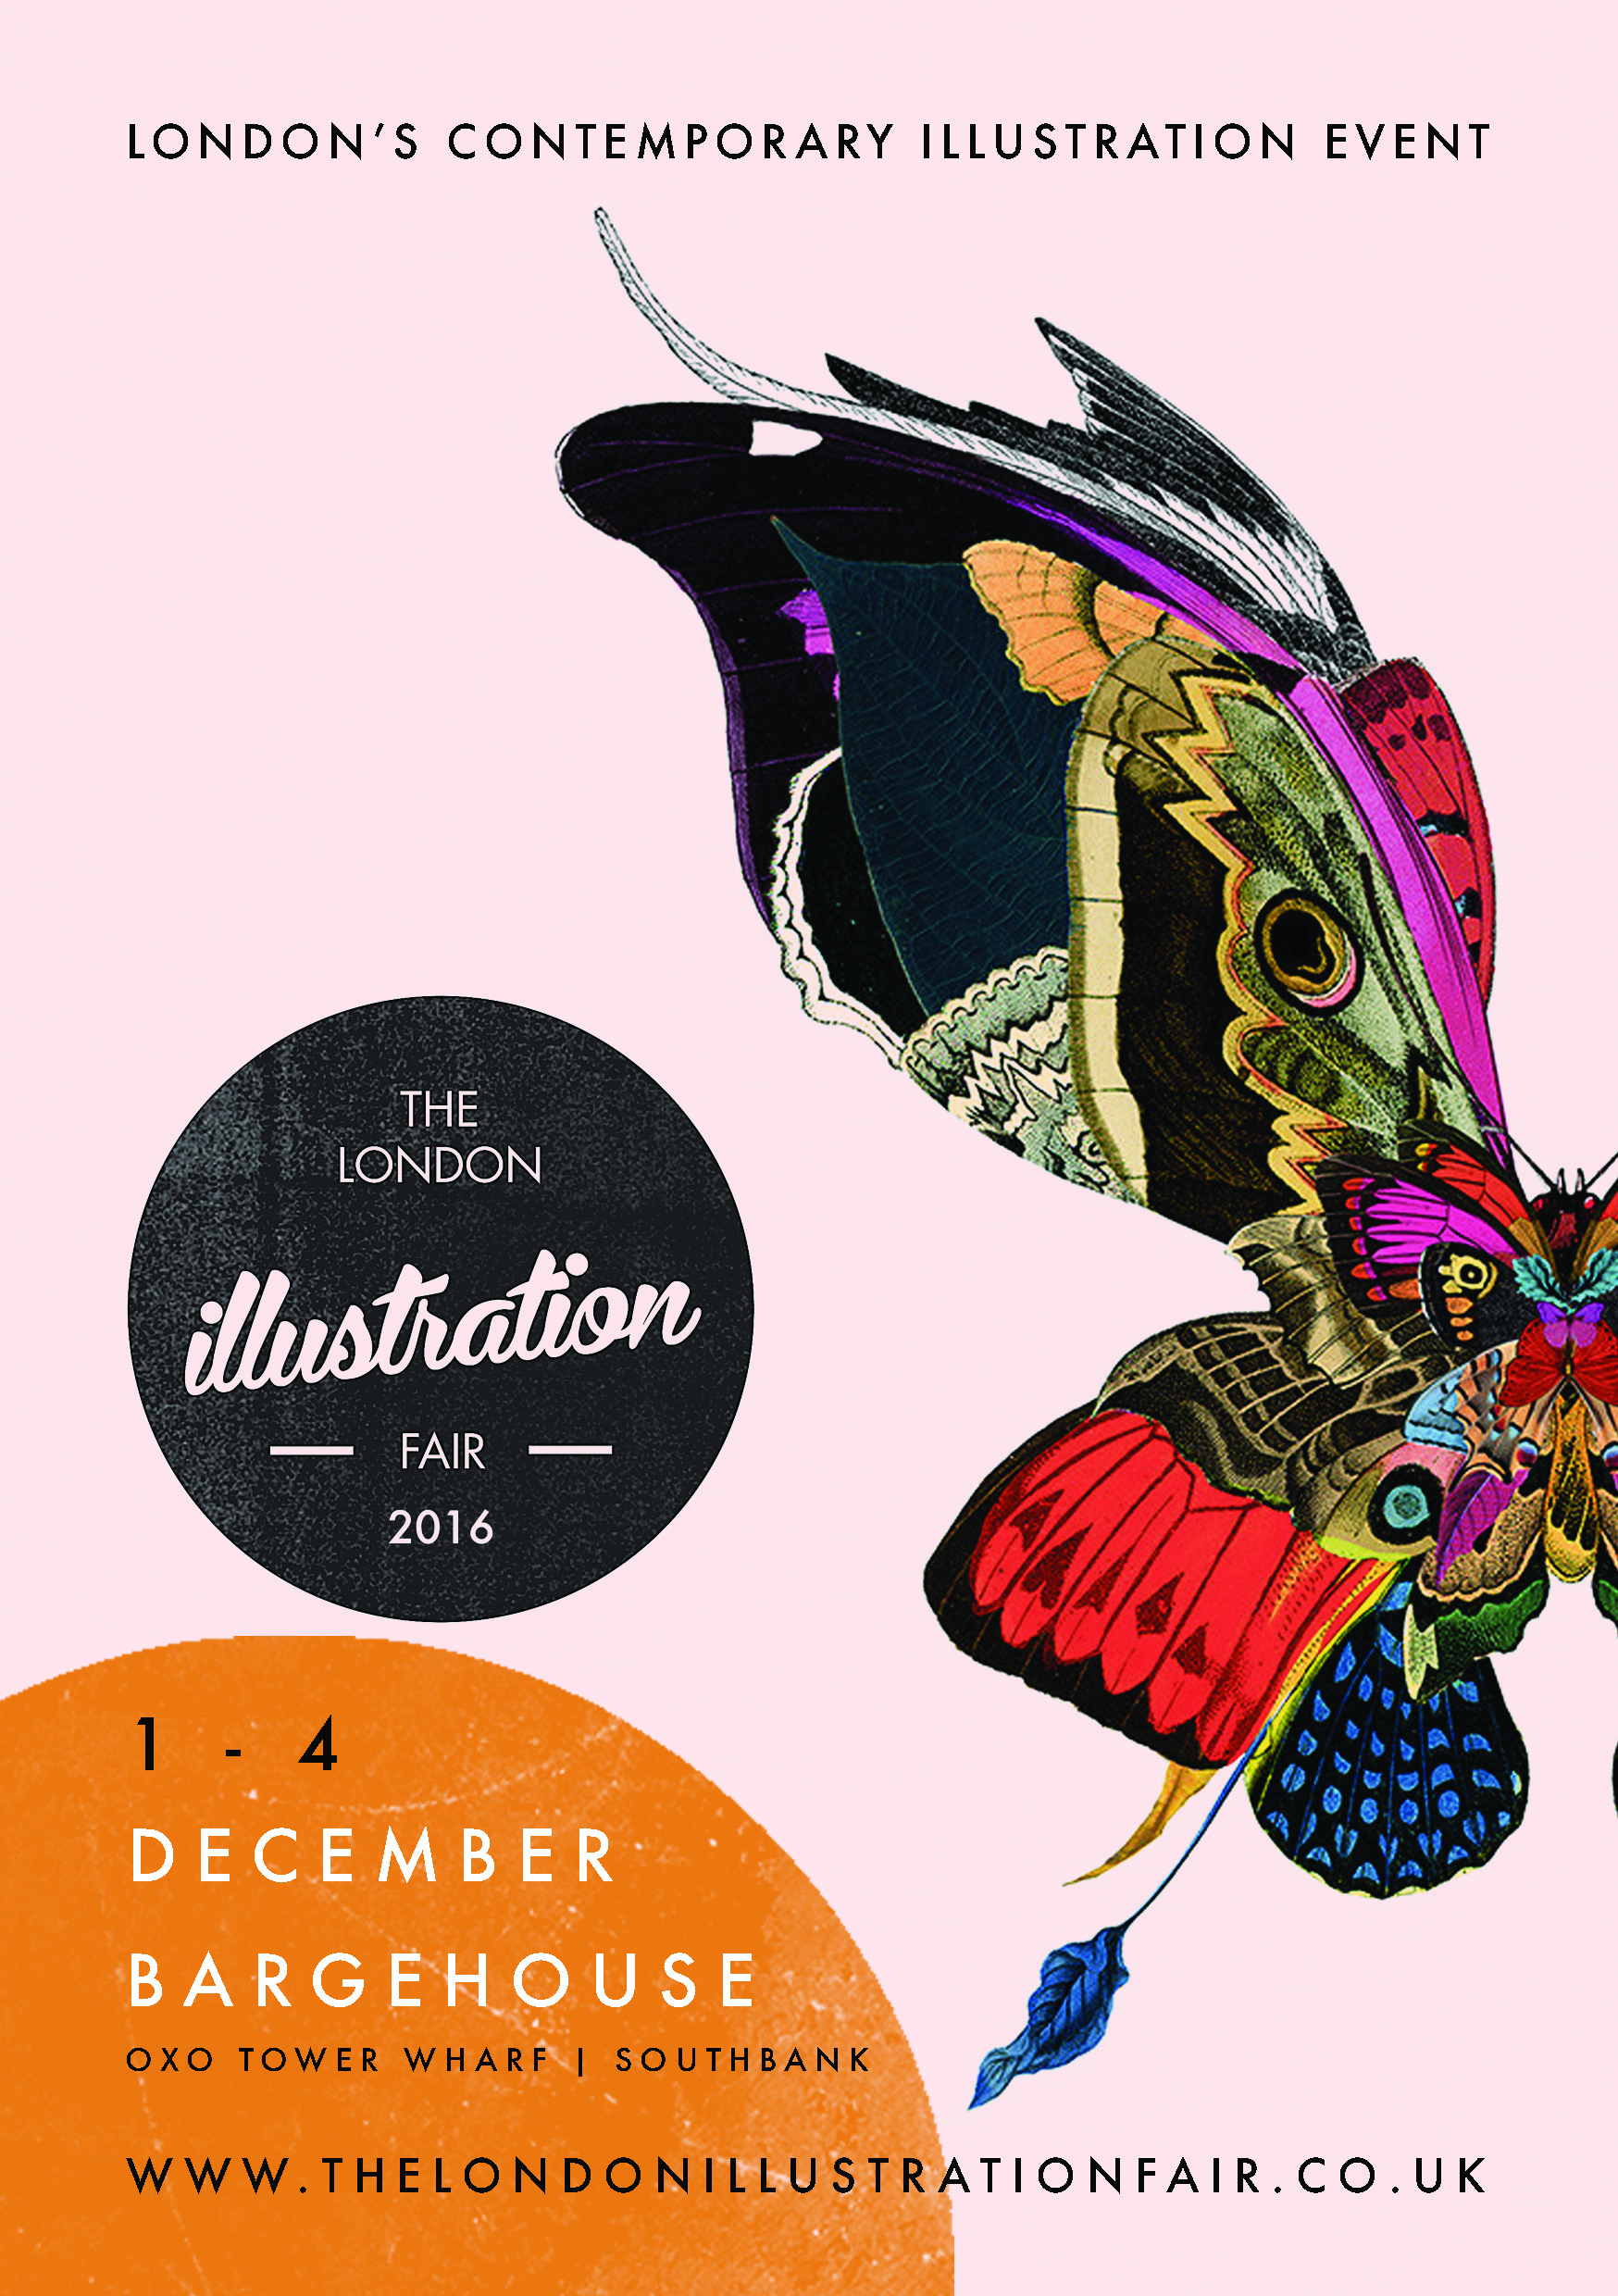 LondonIllustrationFair